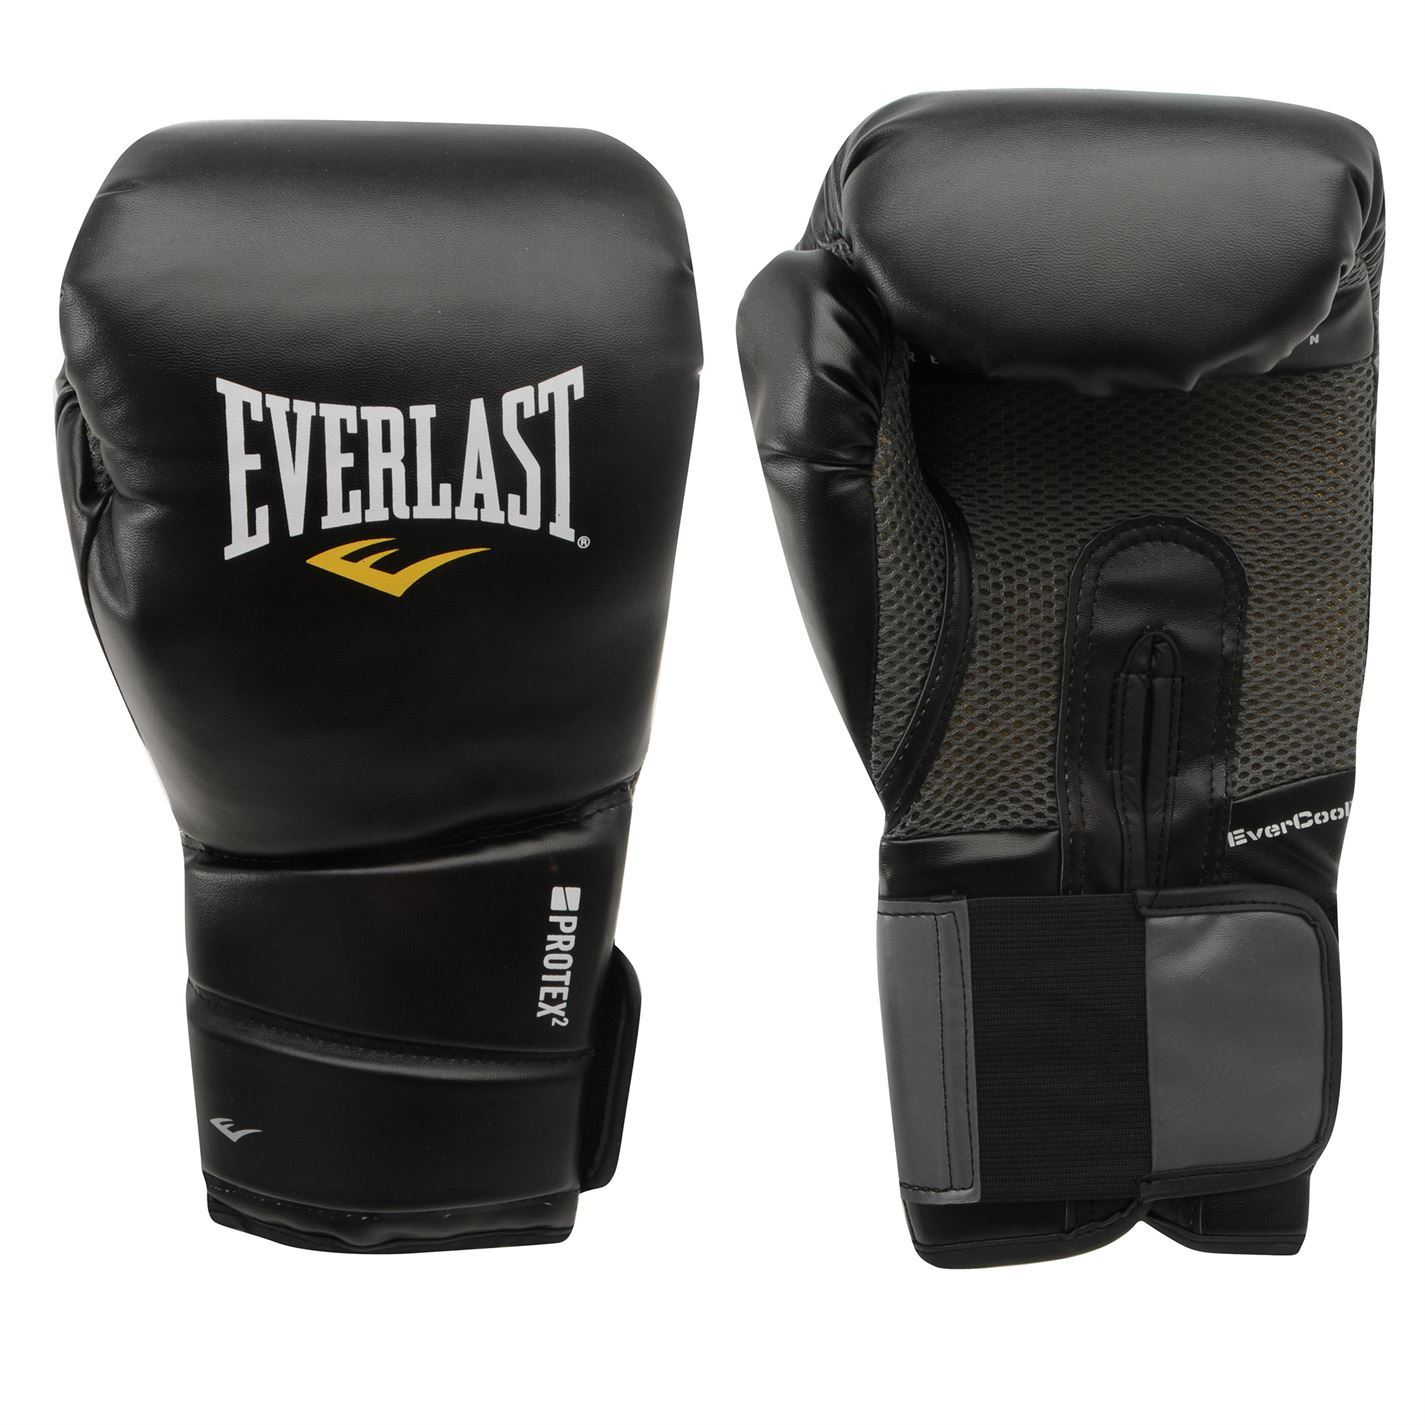 Black Everlast Evercool MMA Kickboxing Gloves